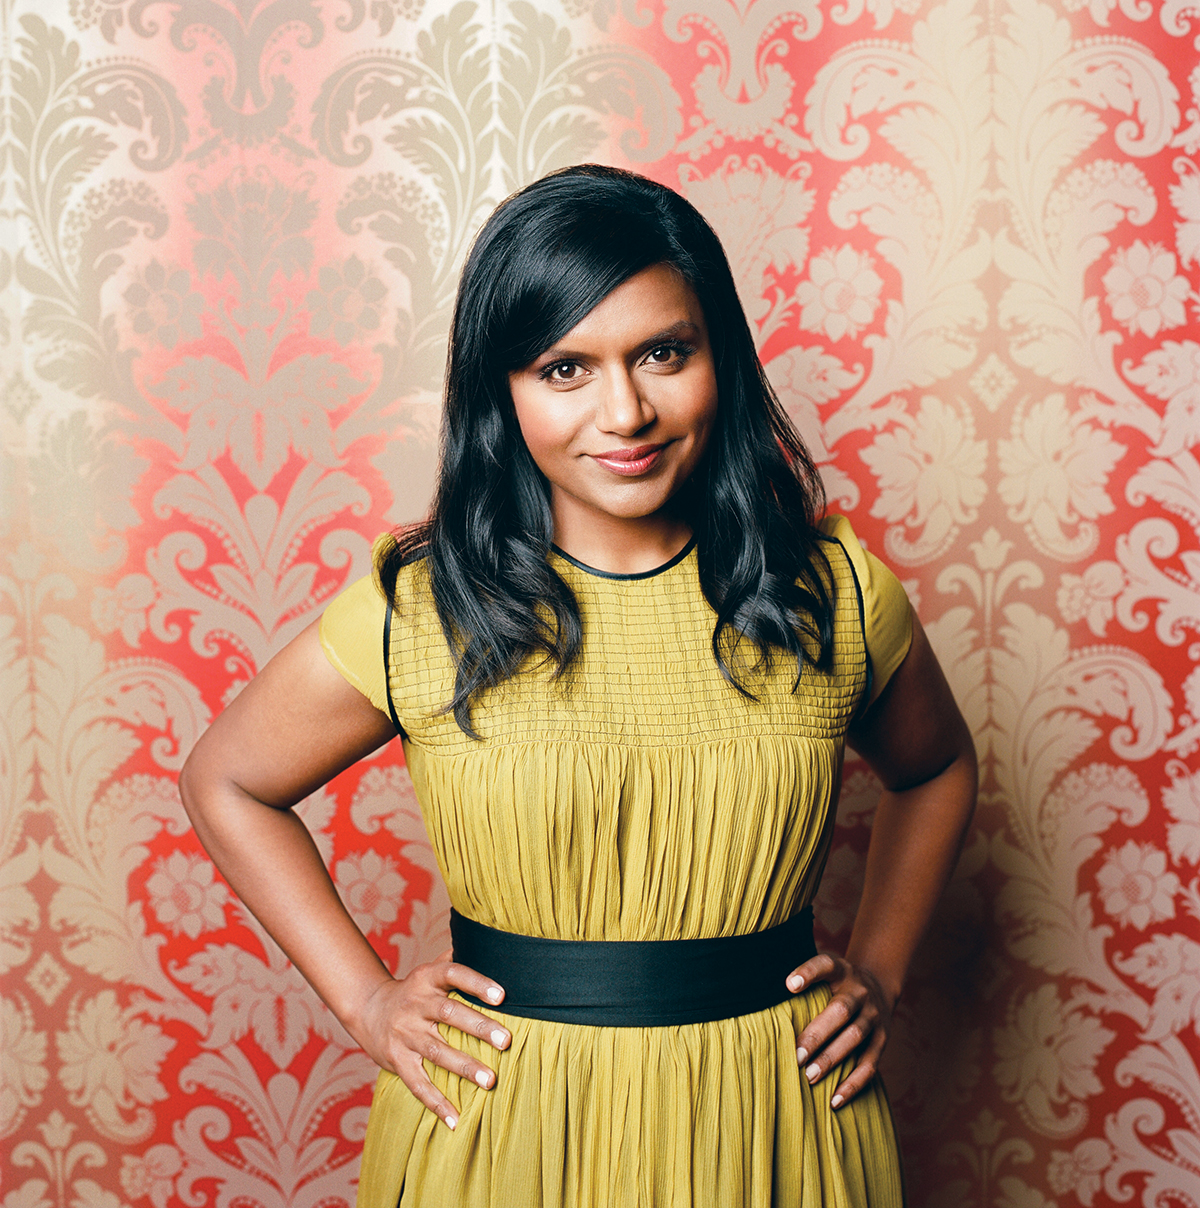 Interview With Mindy Kaling Of 'The Office